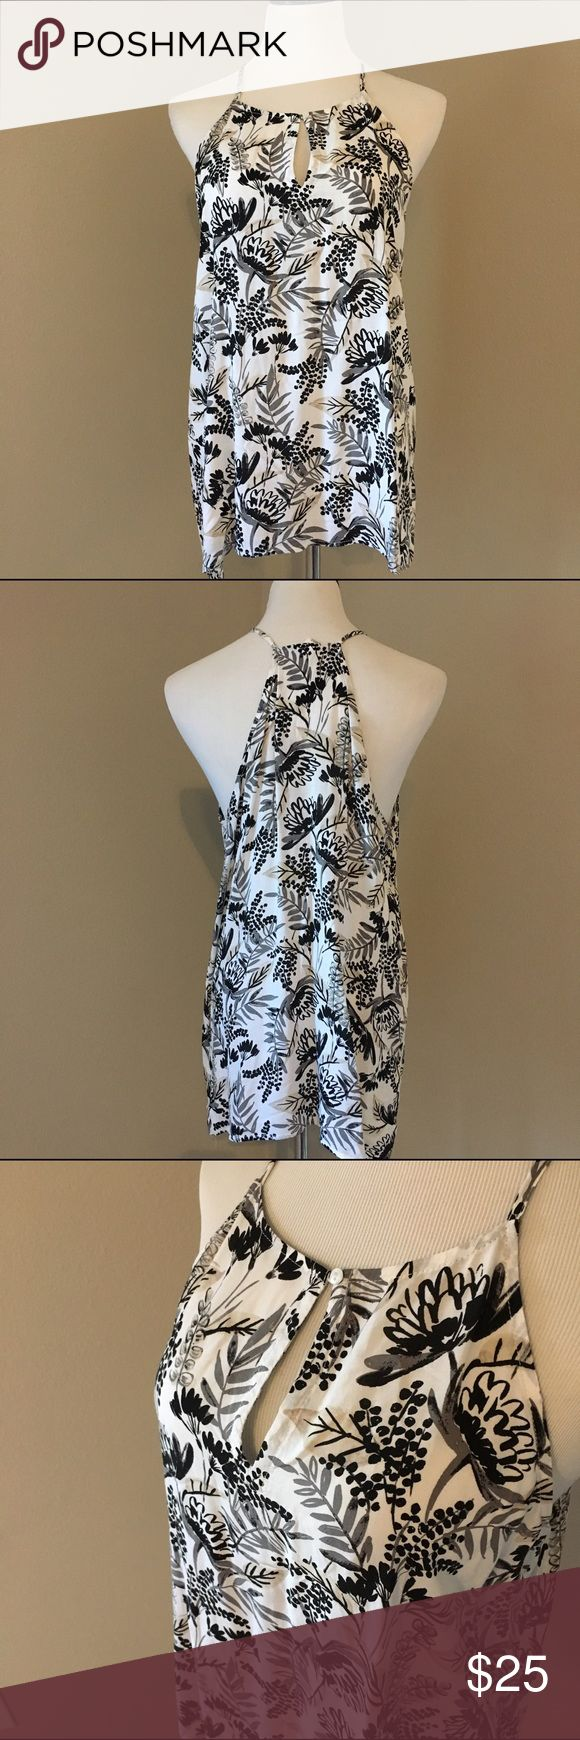 Racerback Tank Top Tropical/Floral print and lightweight material. In excellent used condition. Measurements only by request. Old Navy Tops Tank Tops